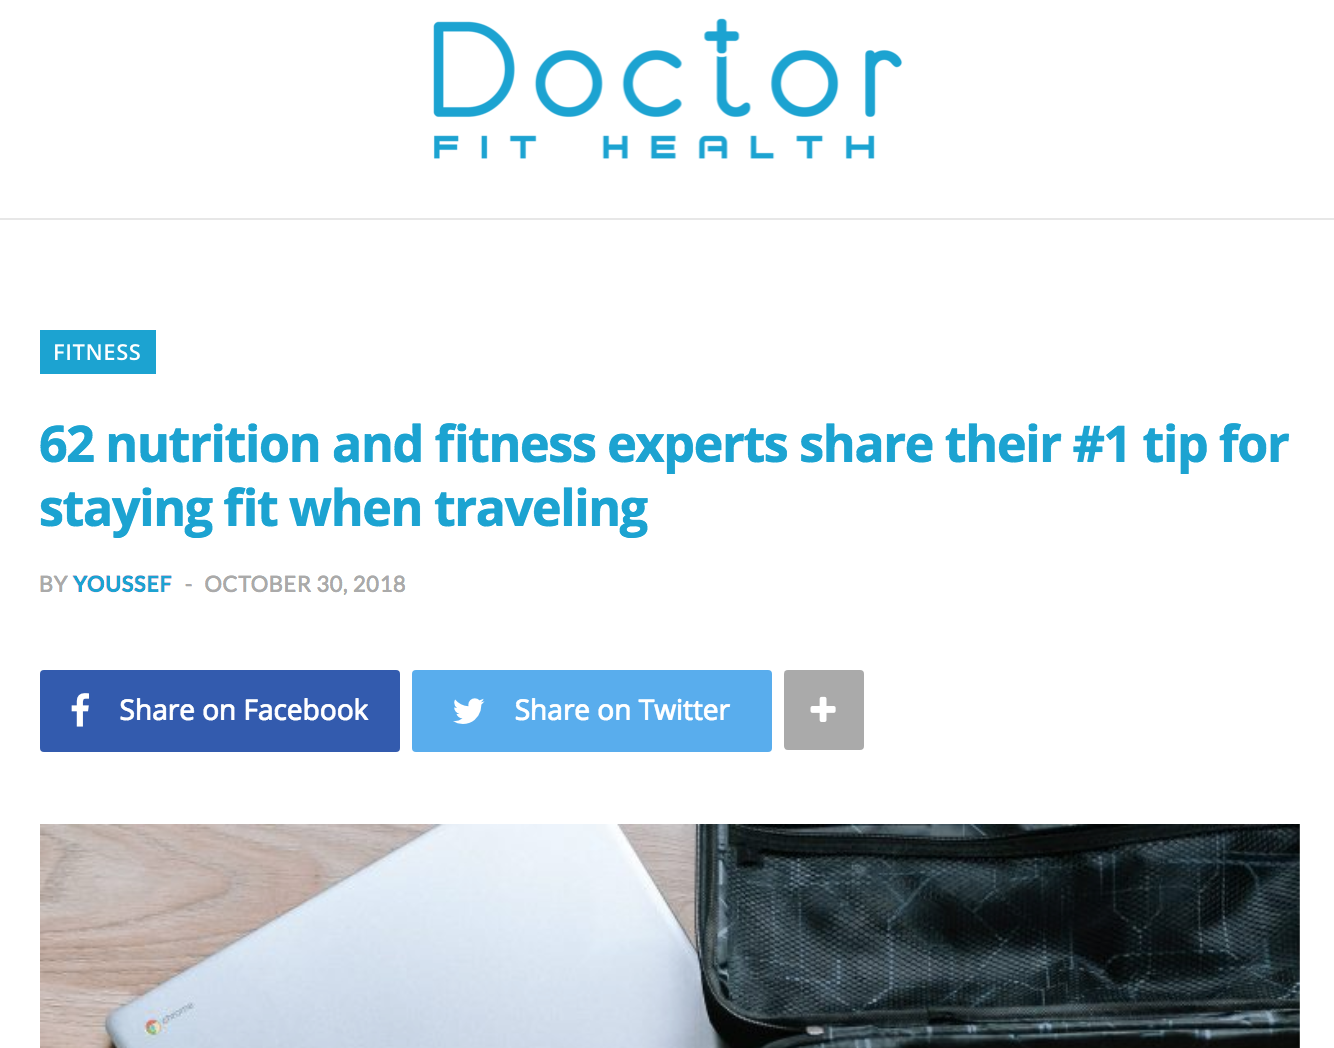 Tips for Staying Fit While Traveling - via DoctorFitHealth.com